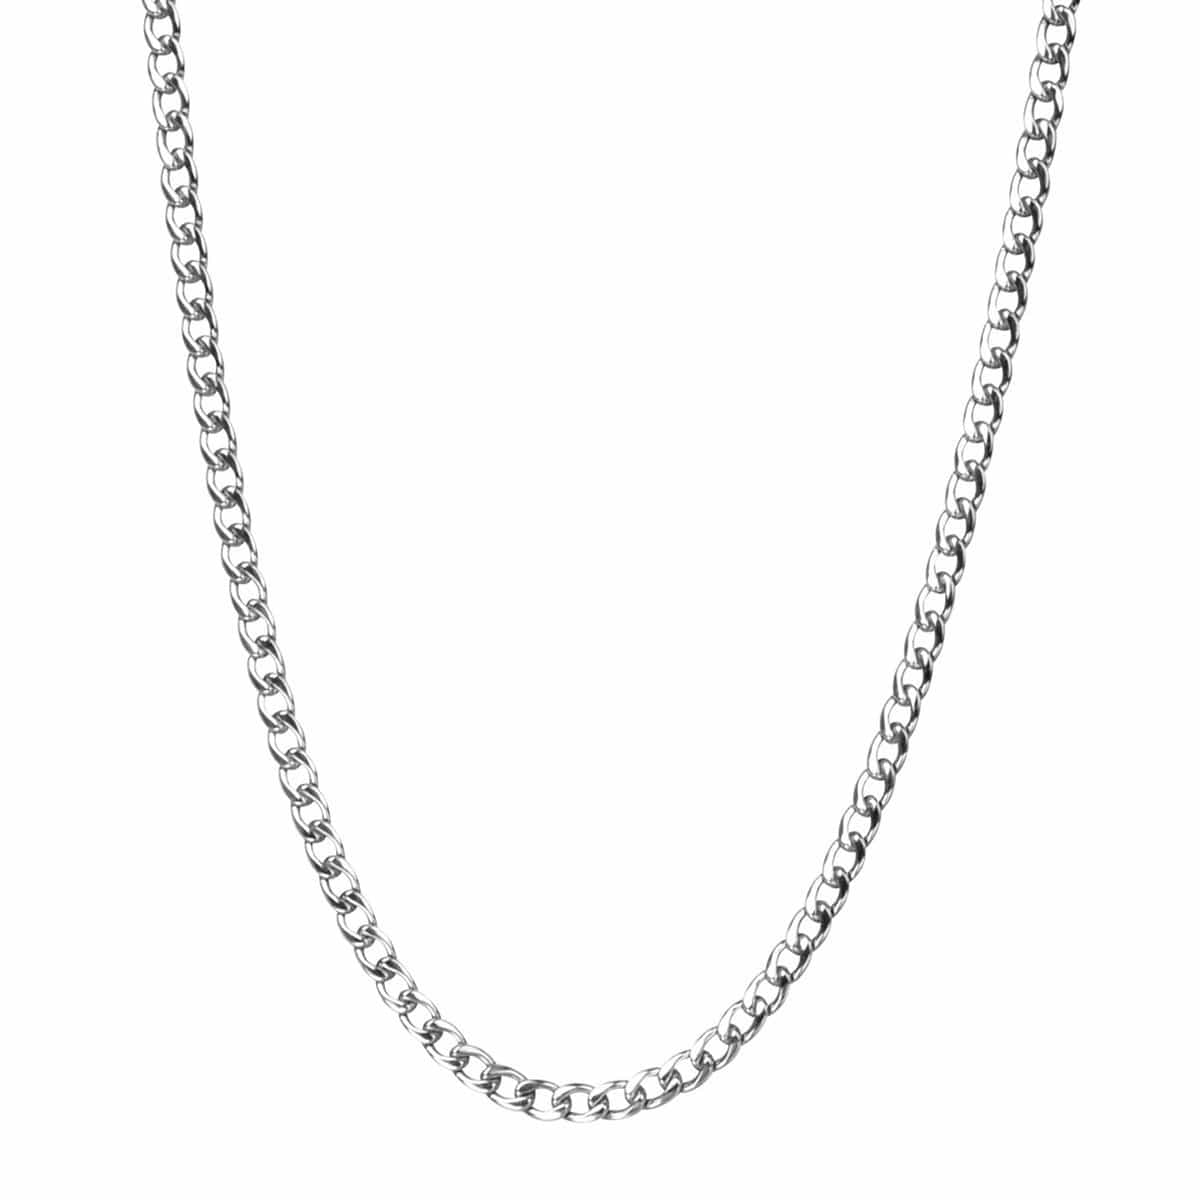 Silver Stainless Steel Small 4.8mm Round Curb Chain Chains